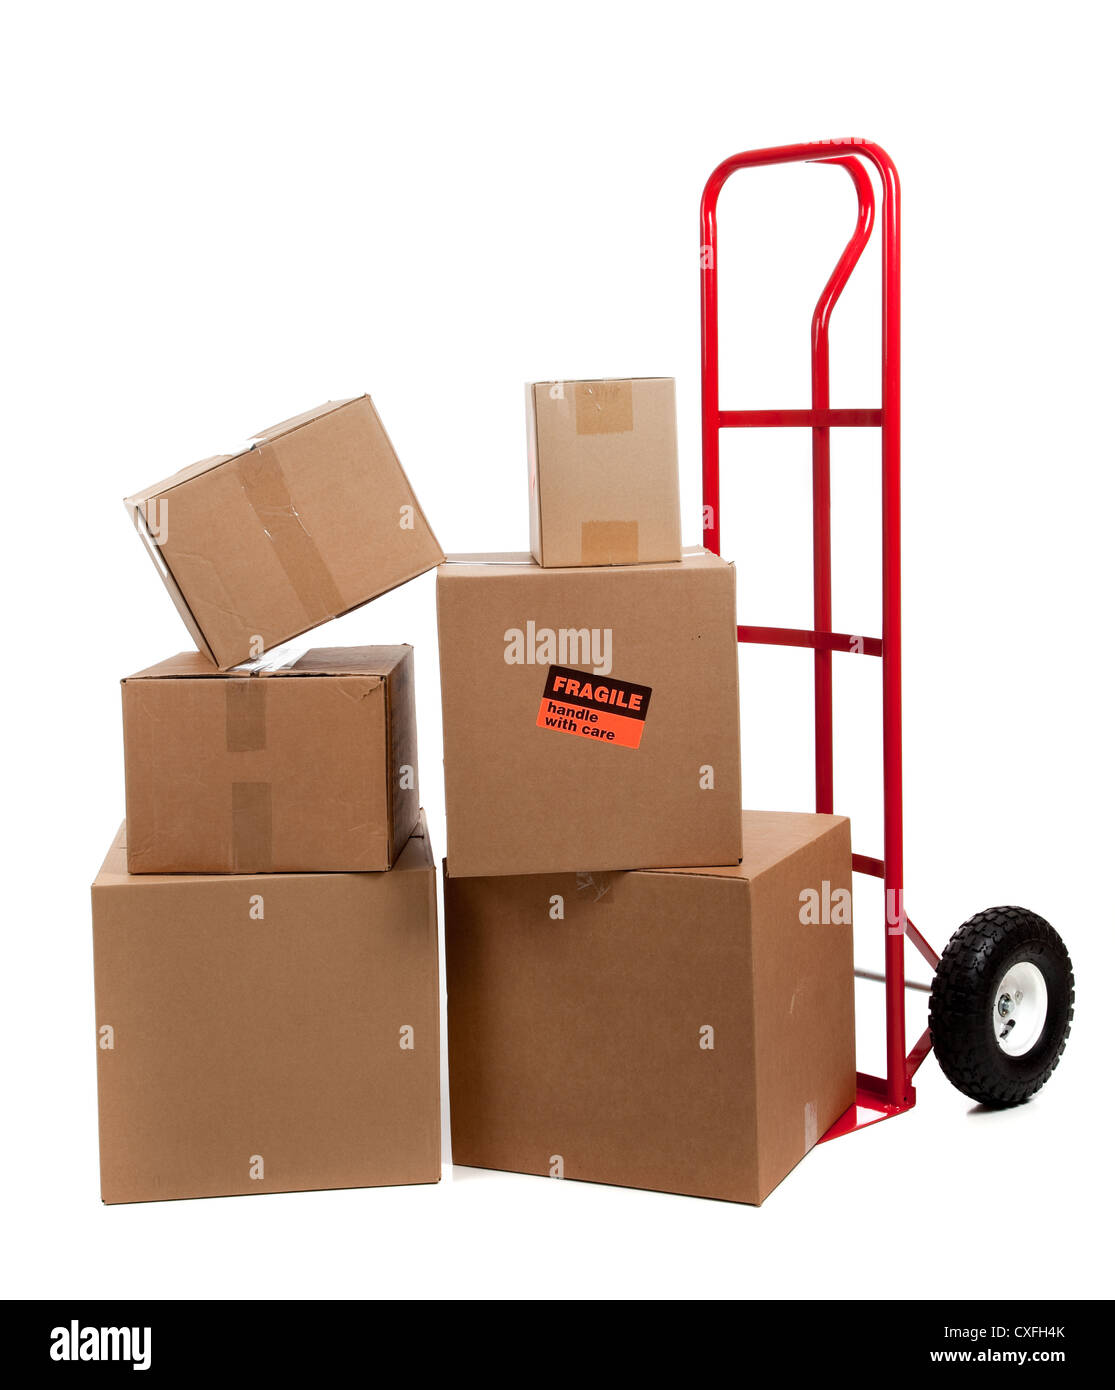 Stacks of cardboard boxes on a red hand truck - Stock Image